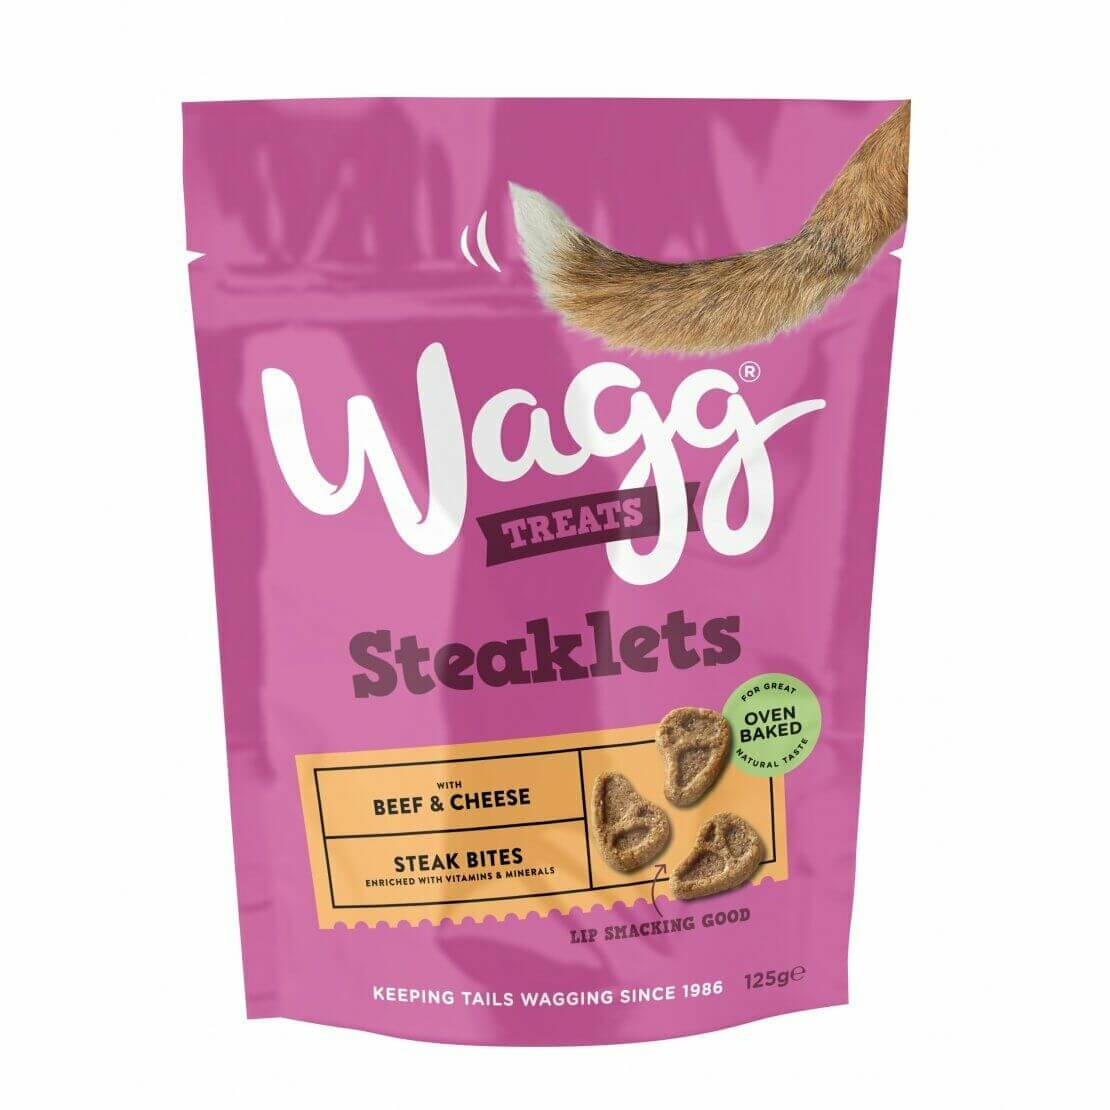 Wagg Steaklets Treats 125g, Dog Supplies by Dog In A Box